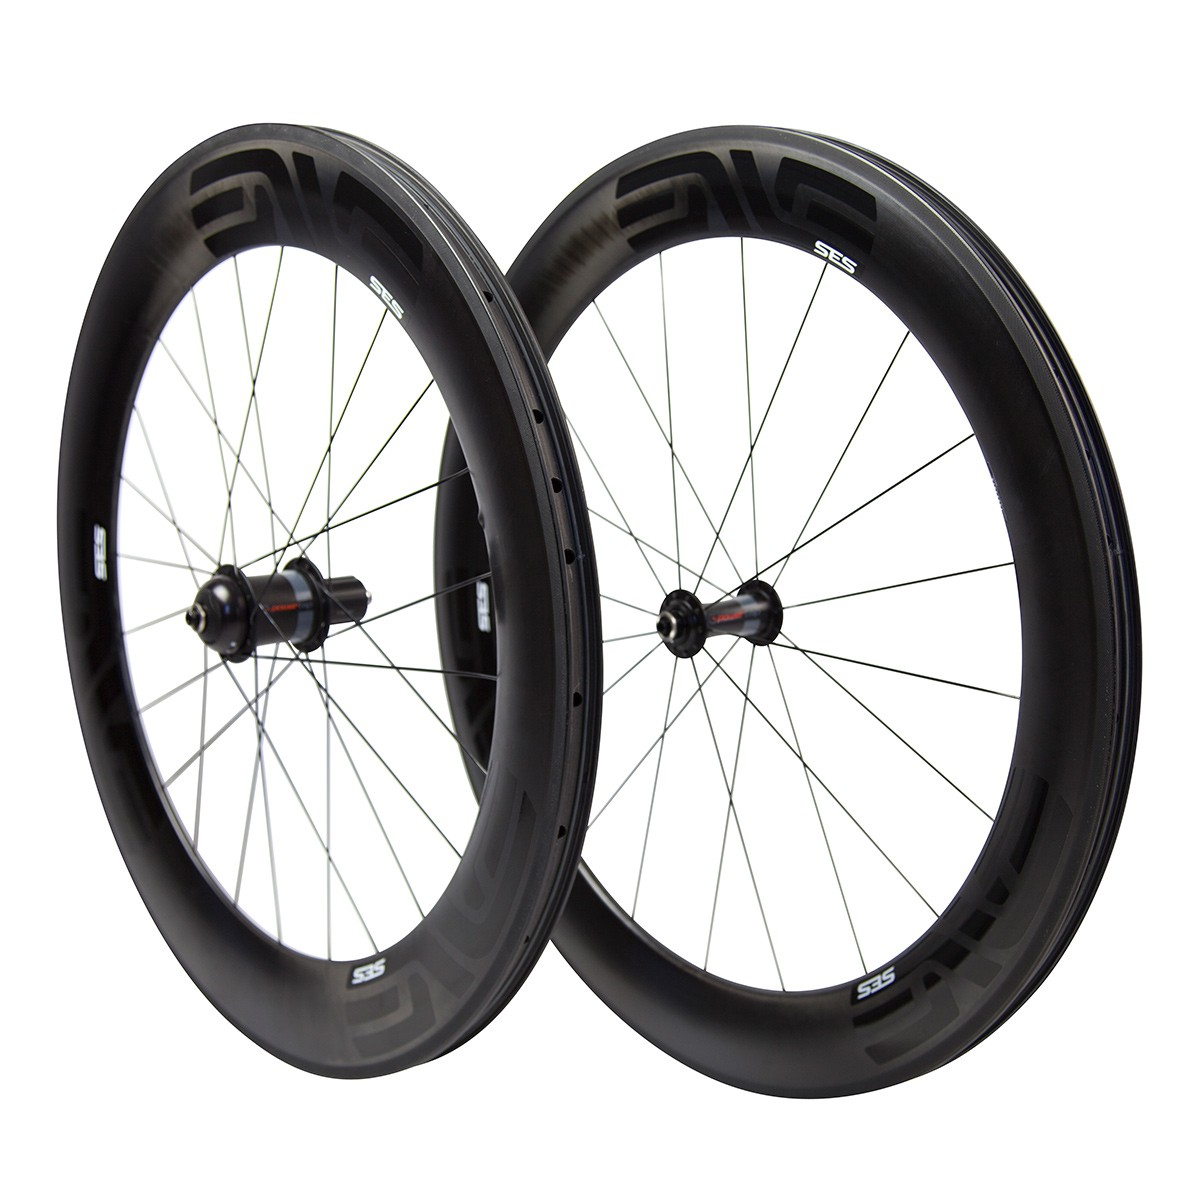 Powertap G3 ENVE SES 7.8 Carbon clincher Wheelset